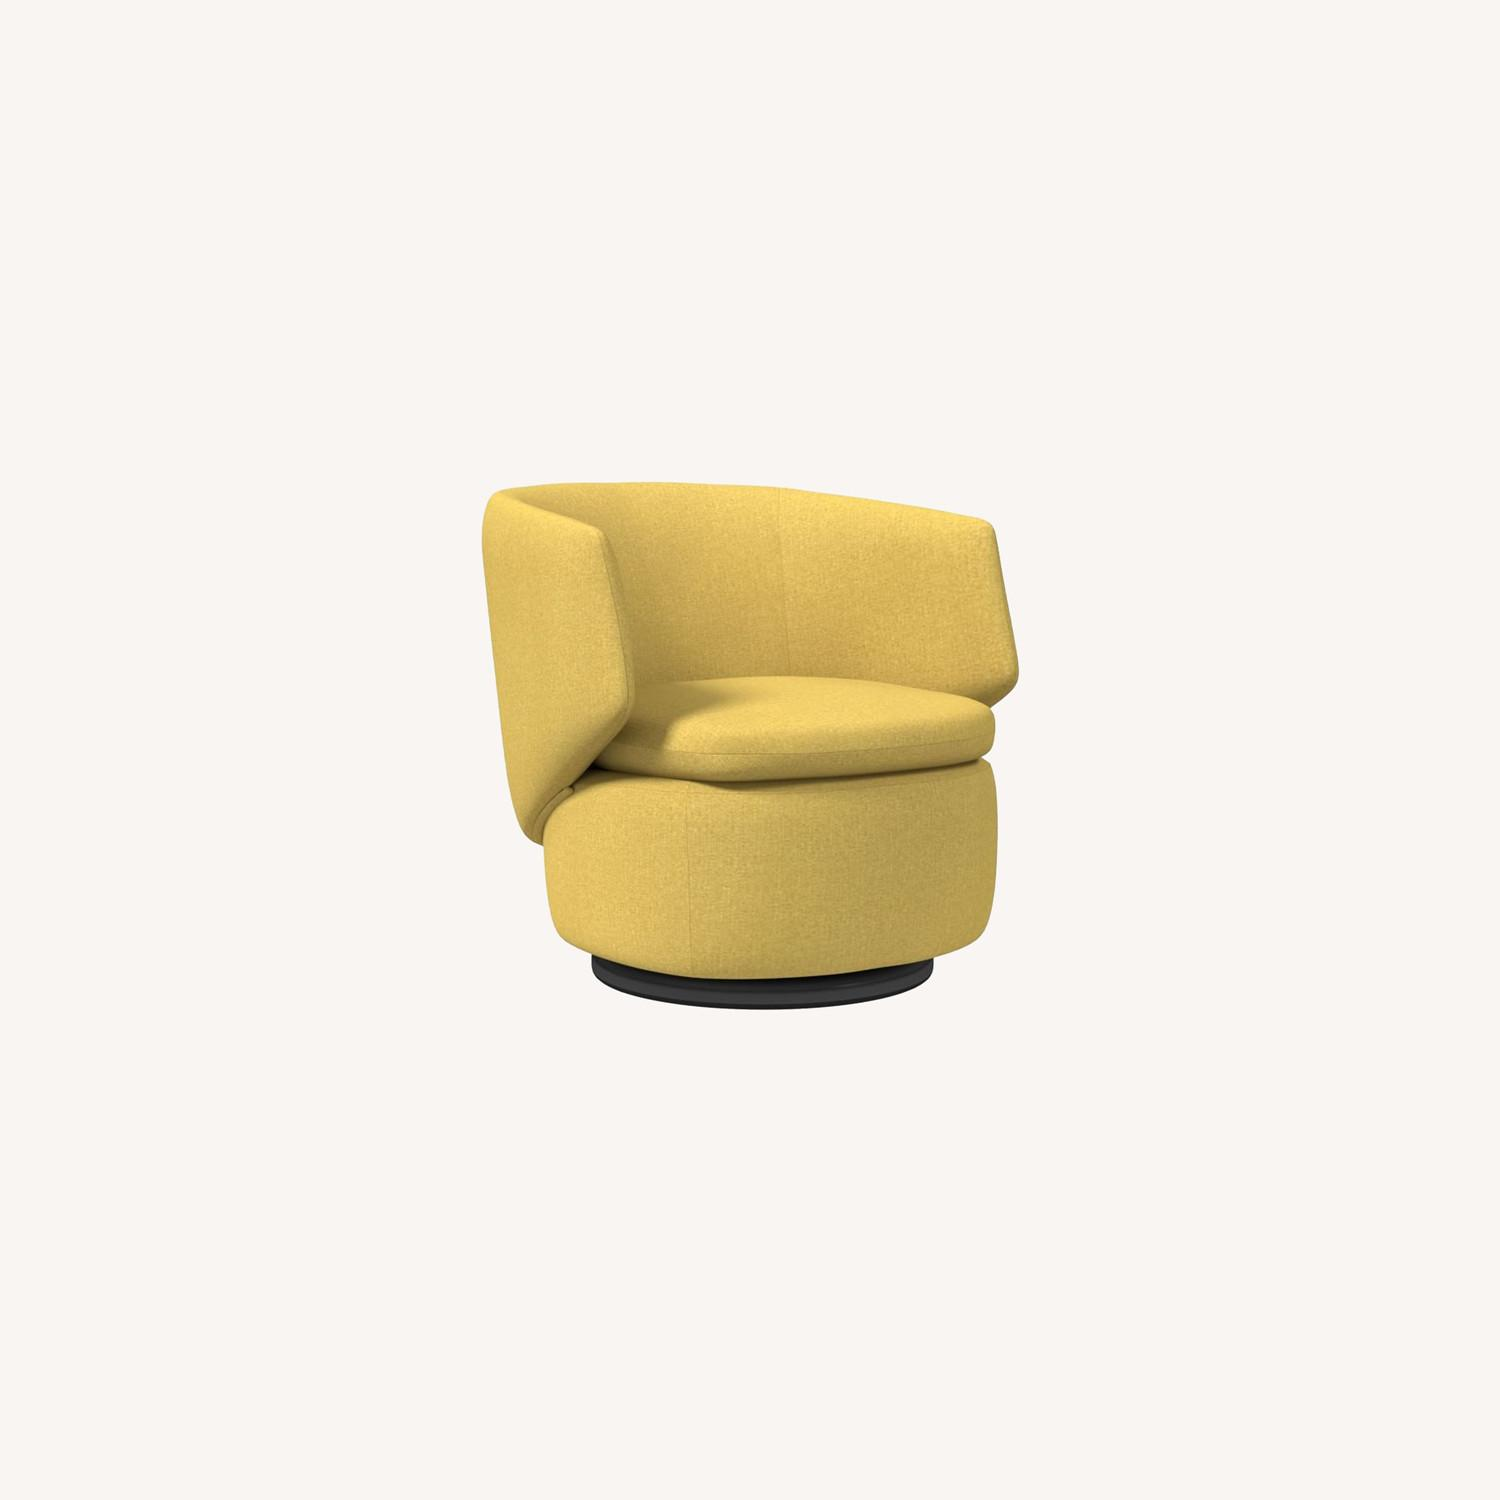 West Elm Crescent Swivel Chair - image-0